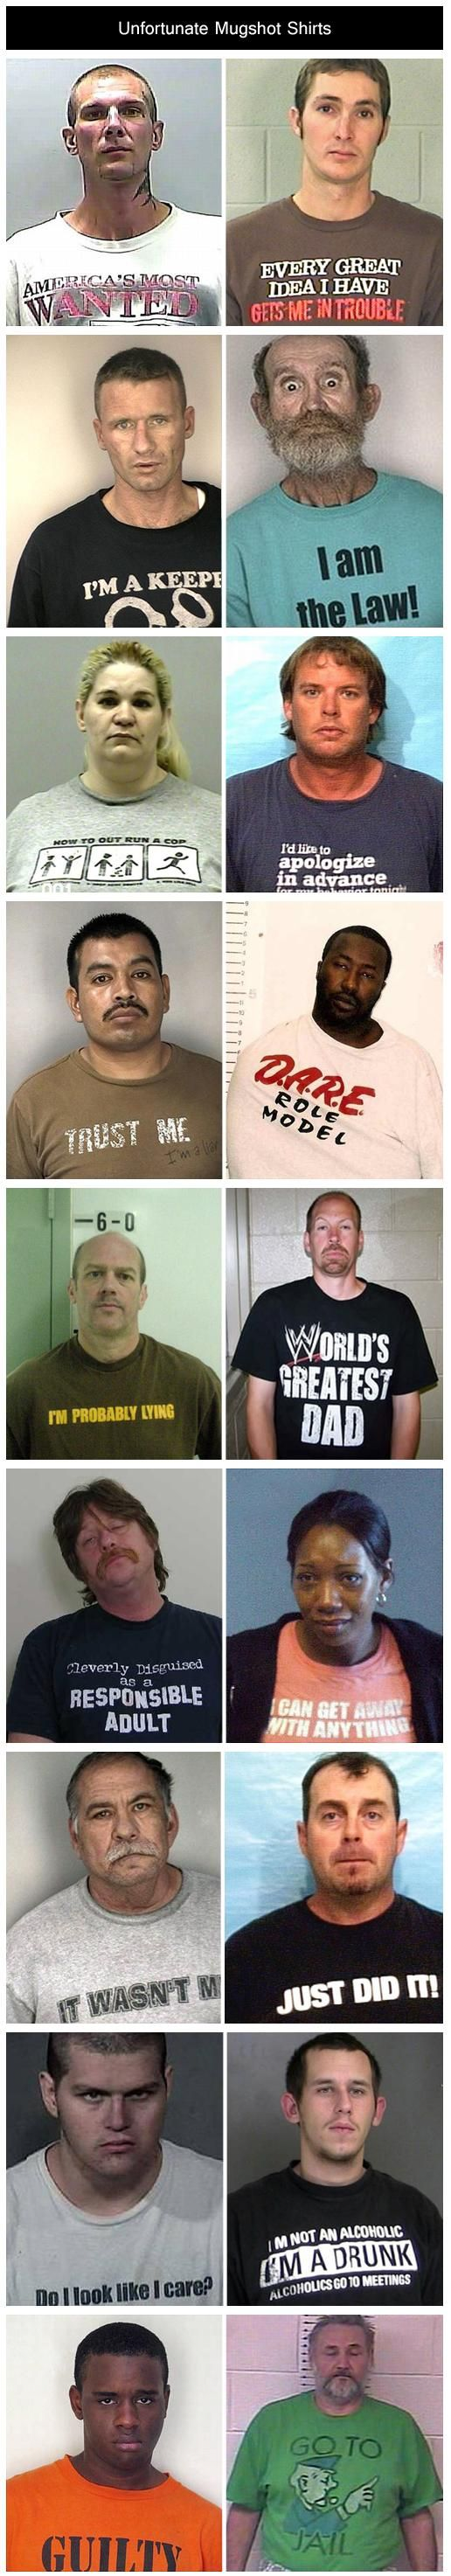 It is like the one I saw where a man was arrested for a violation of epo/dvo with a shirt that had the name of the victim on his shirt...LOL.